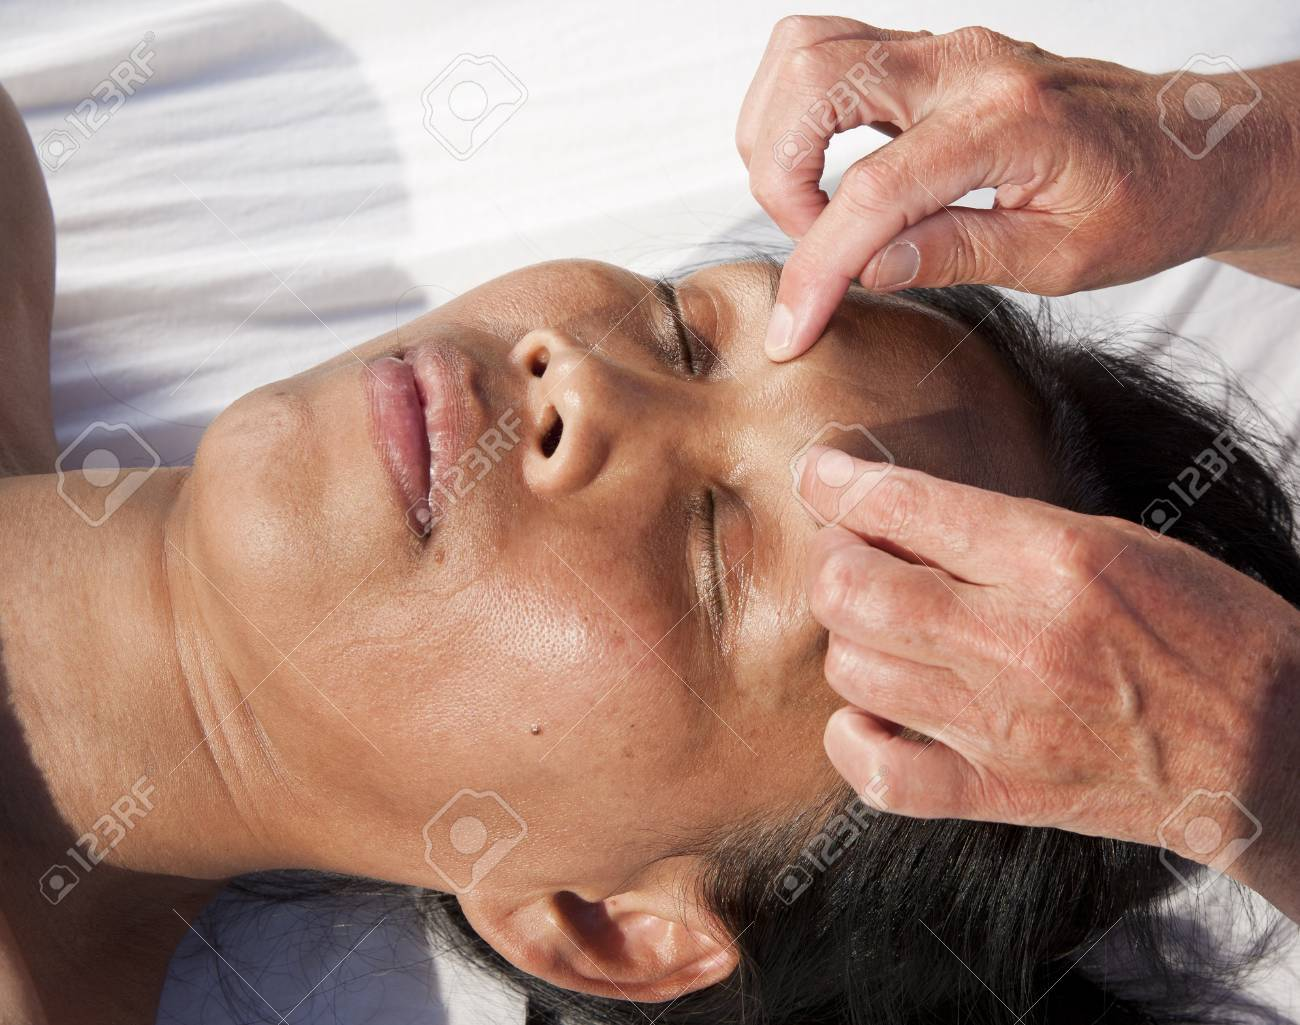 Japanese facial massage Stock Photo - 15743028